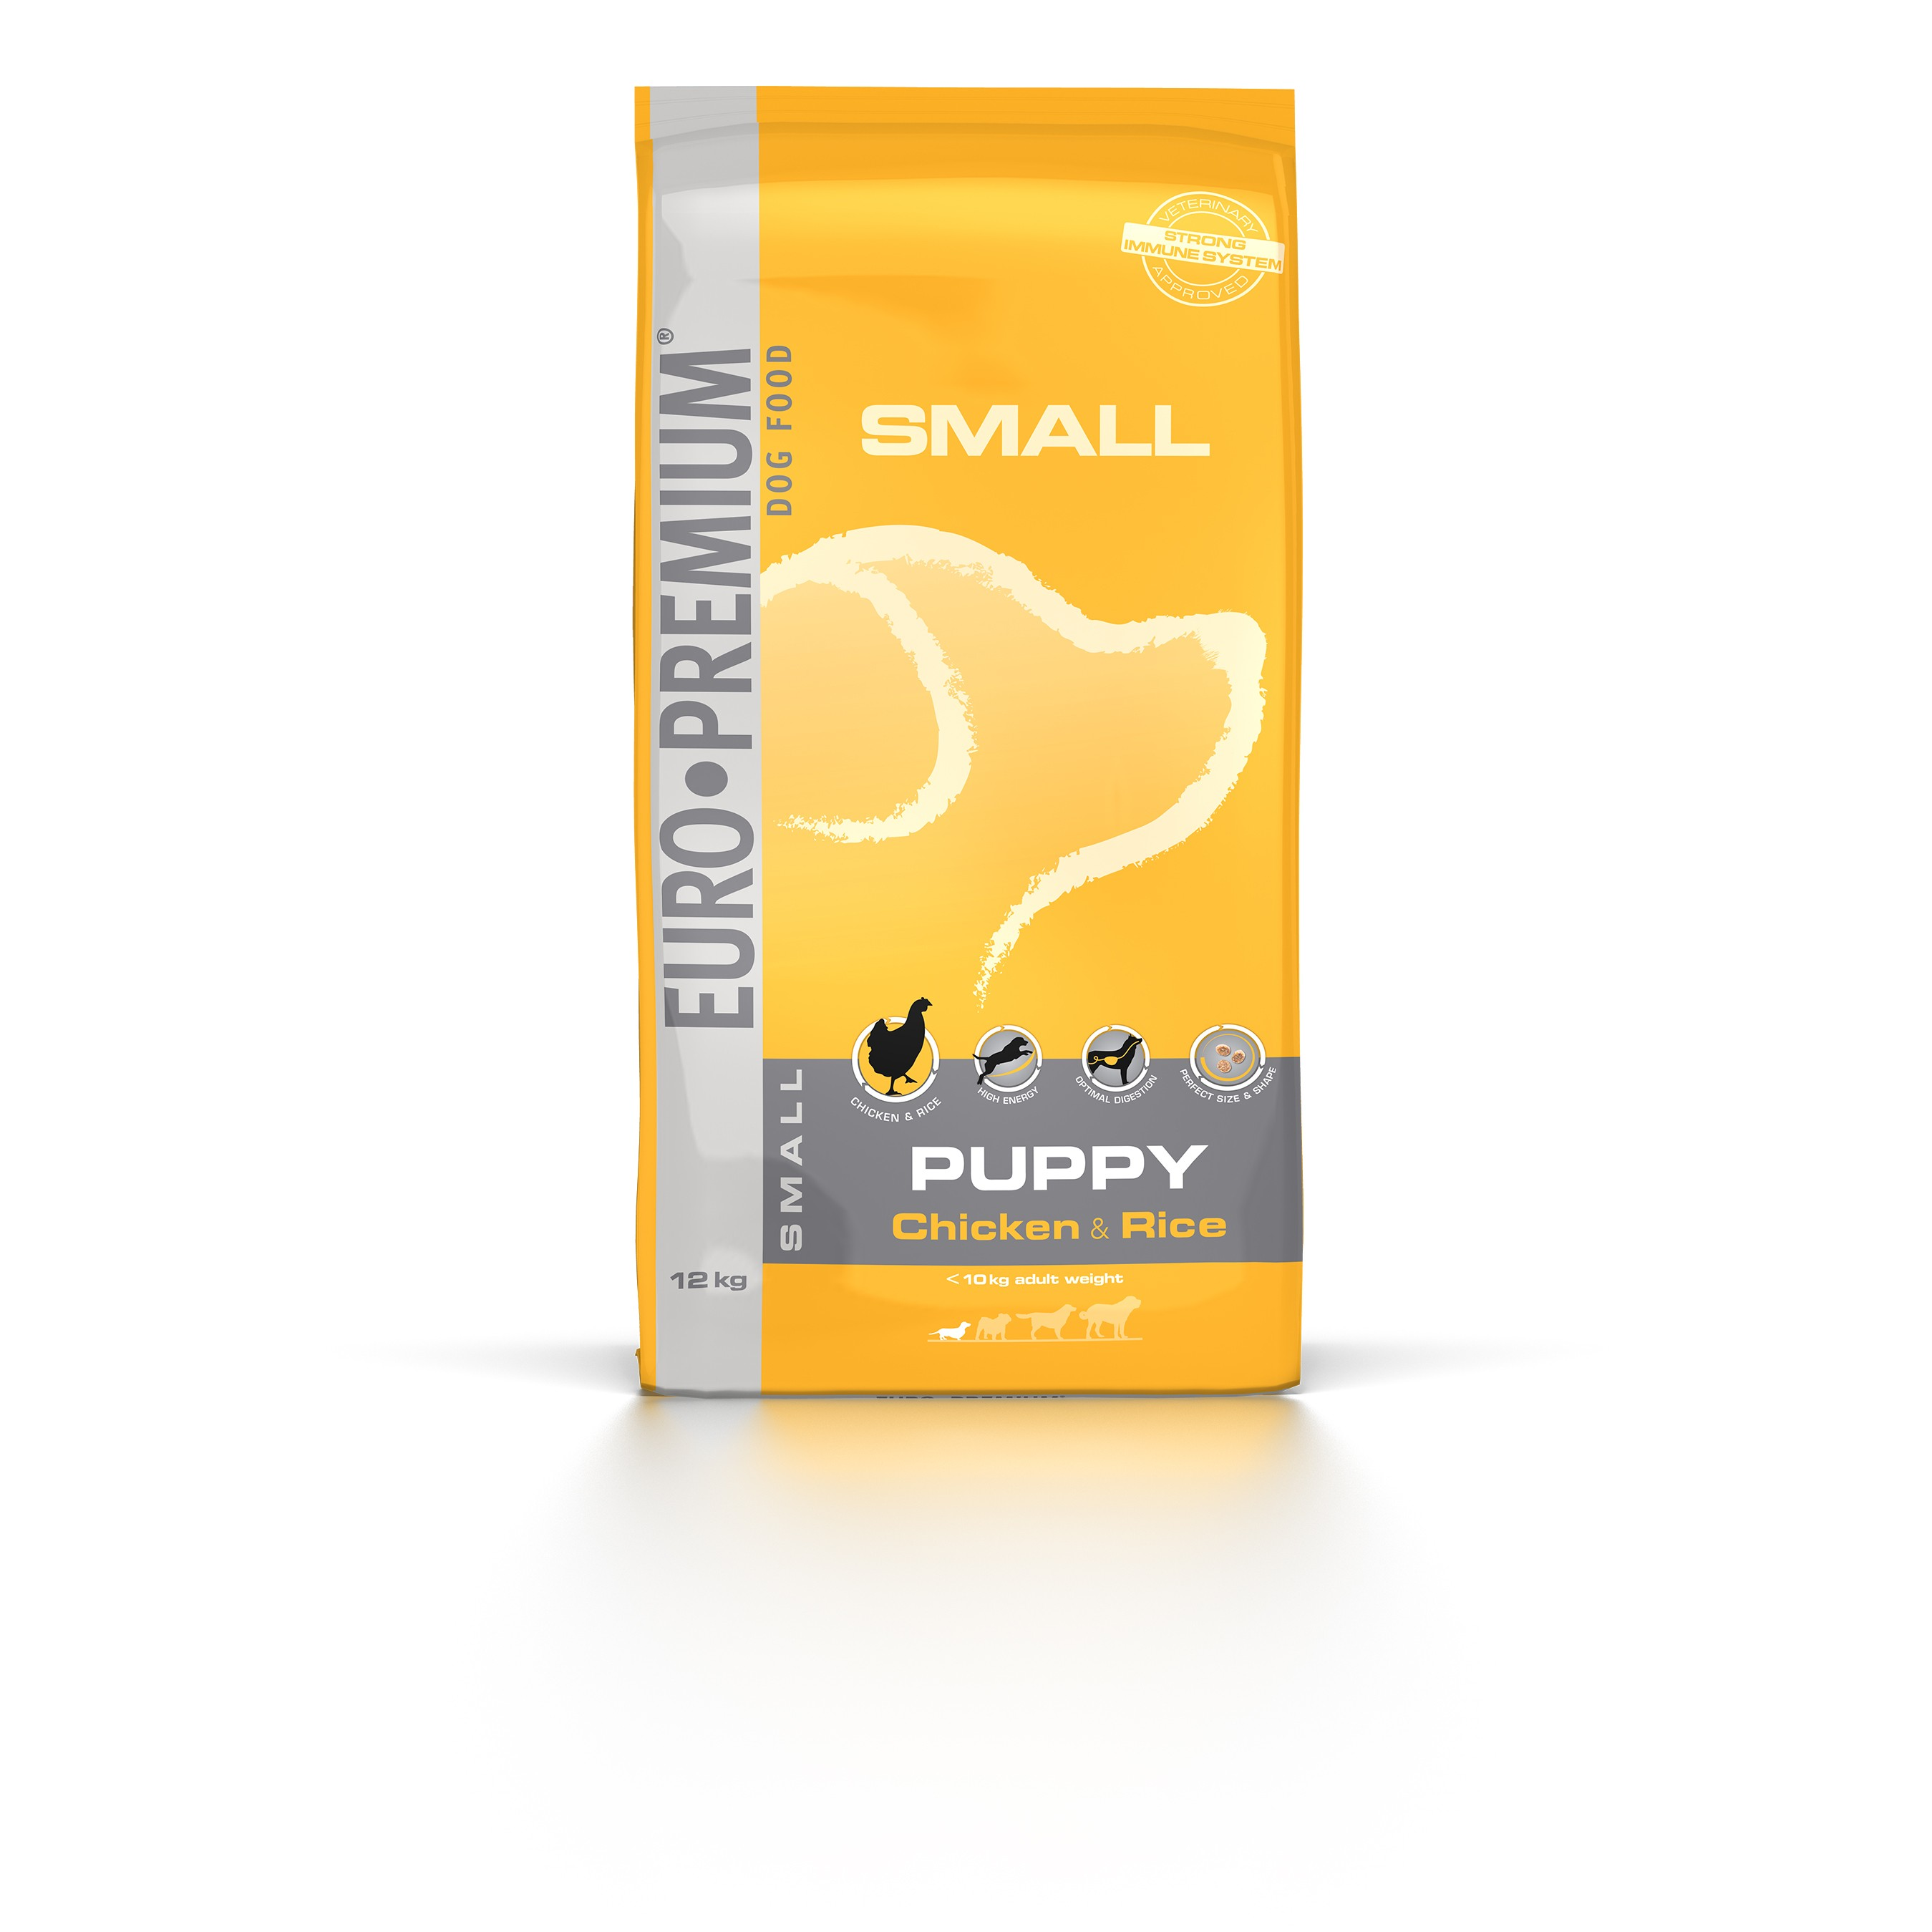 Euro Premium Small Puppy Chicken & Rice hondenvoer